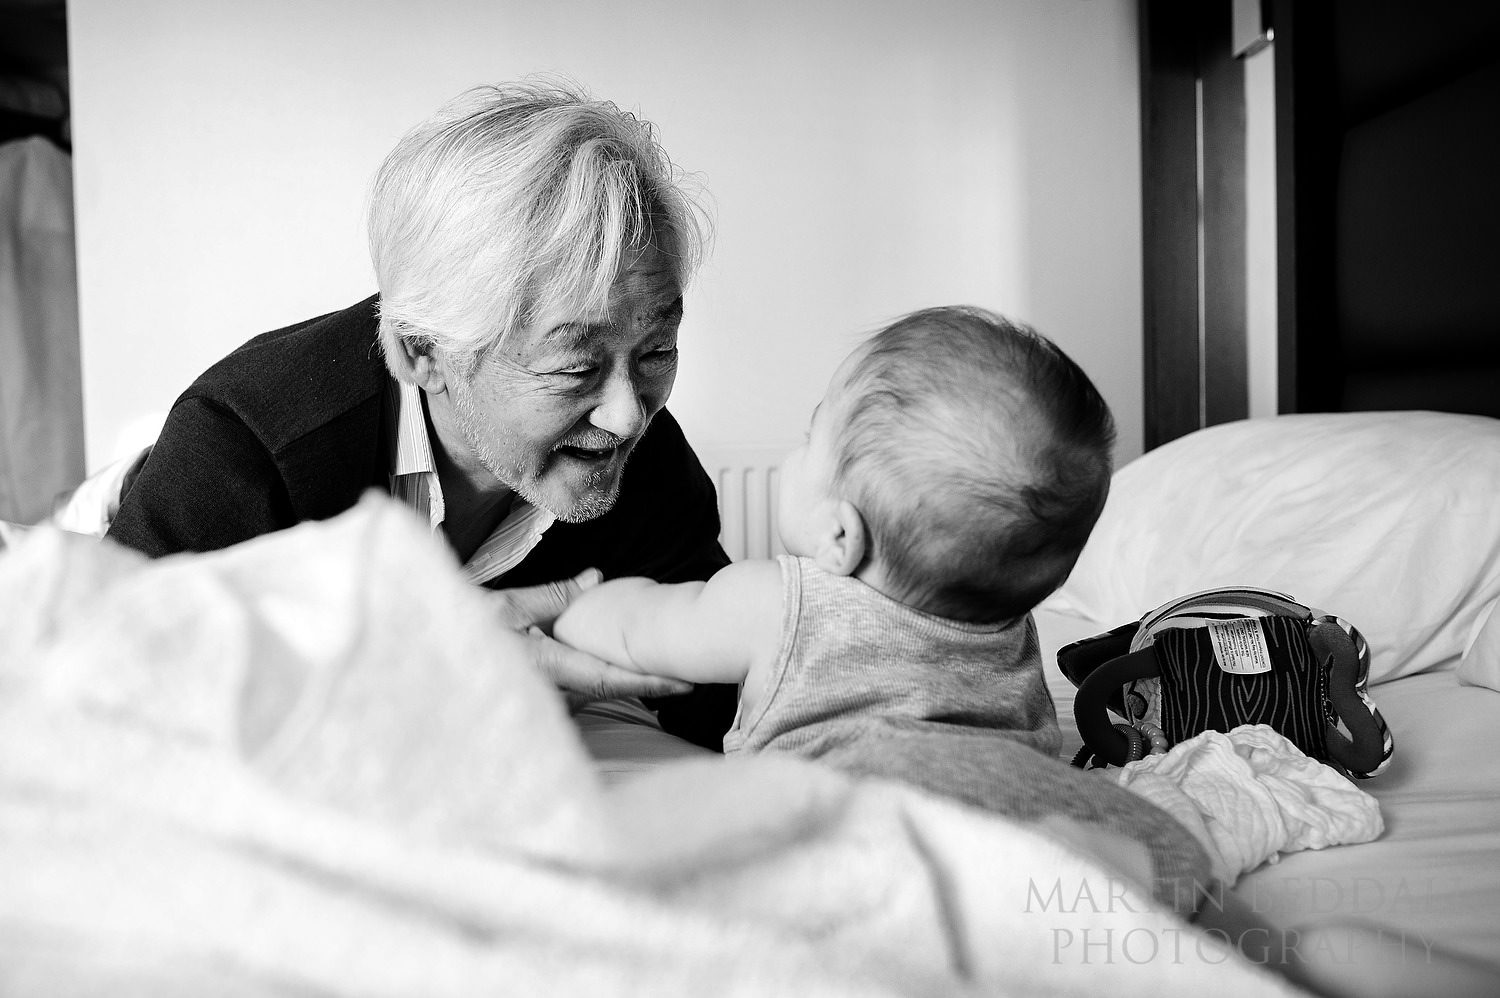 Playing with his grandfather